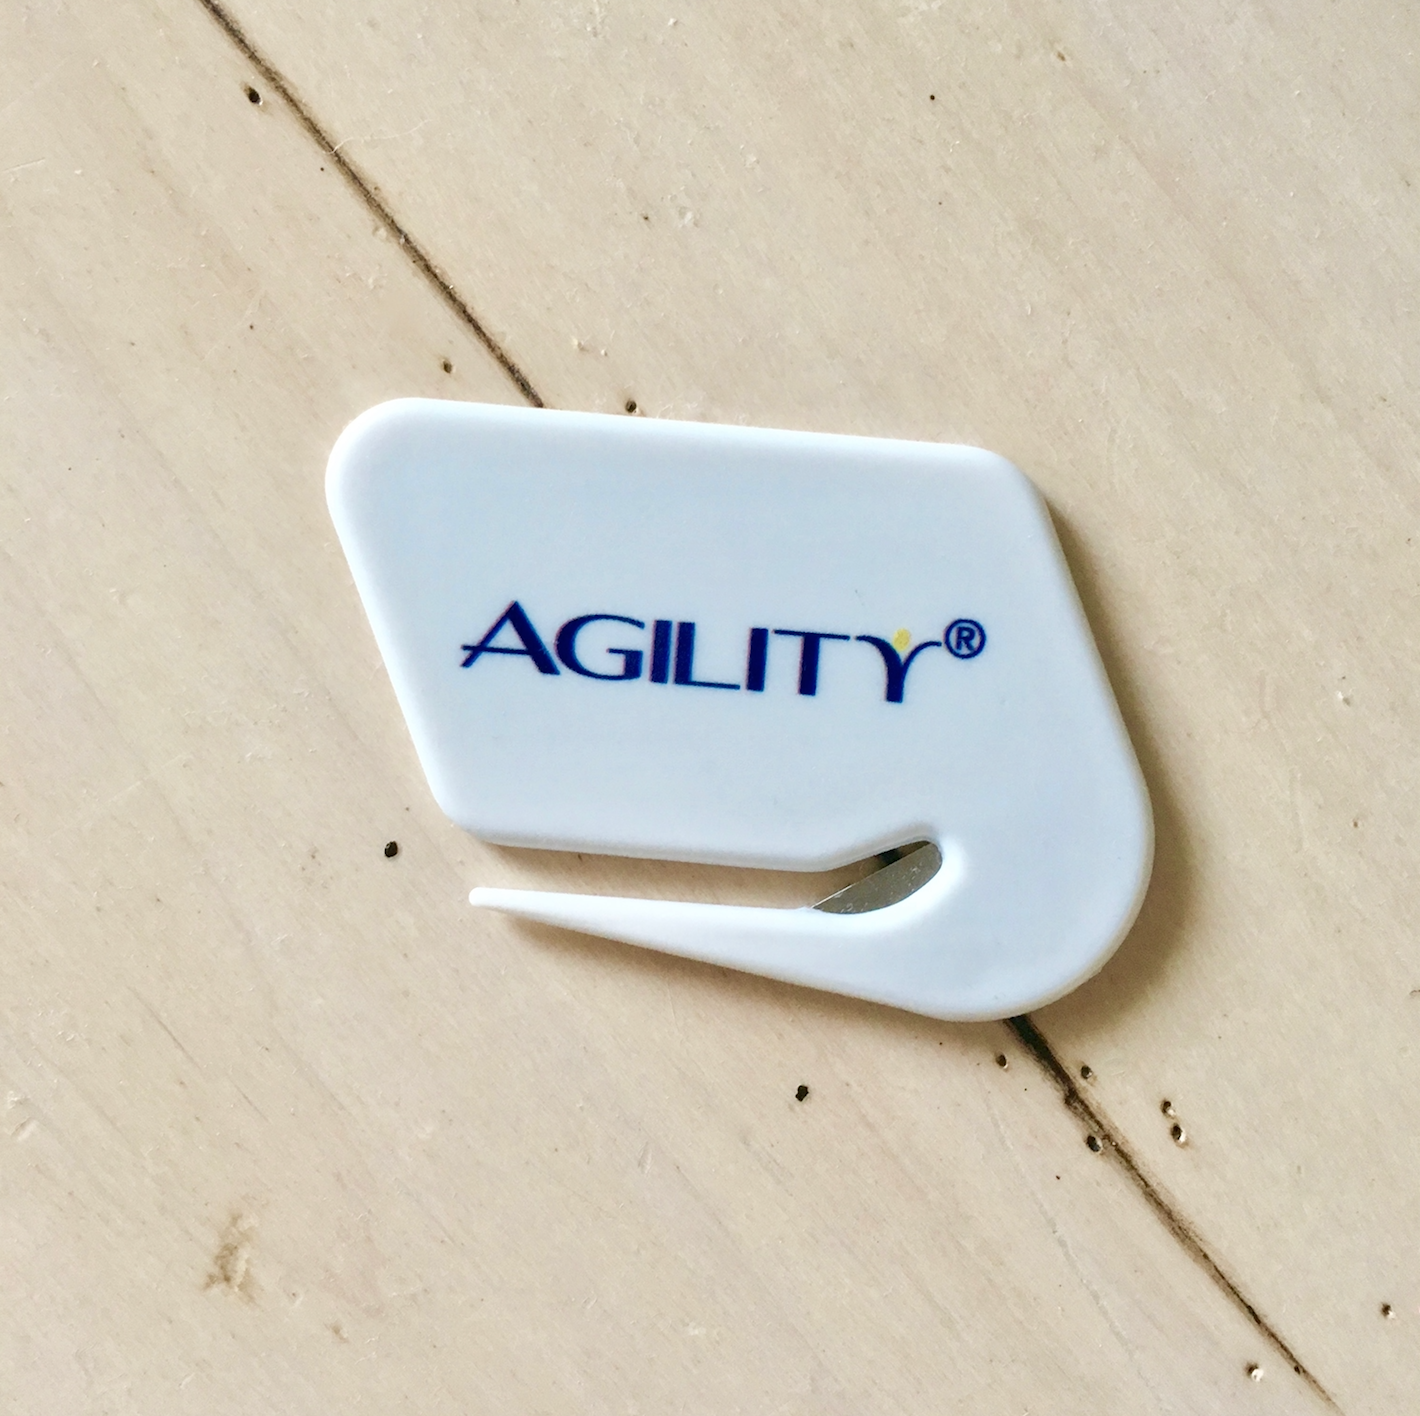 The Best Mattress You Can Buy: The Agility Mattress | Agility ...